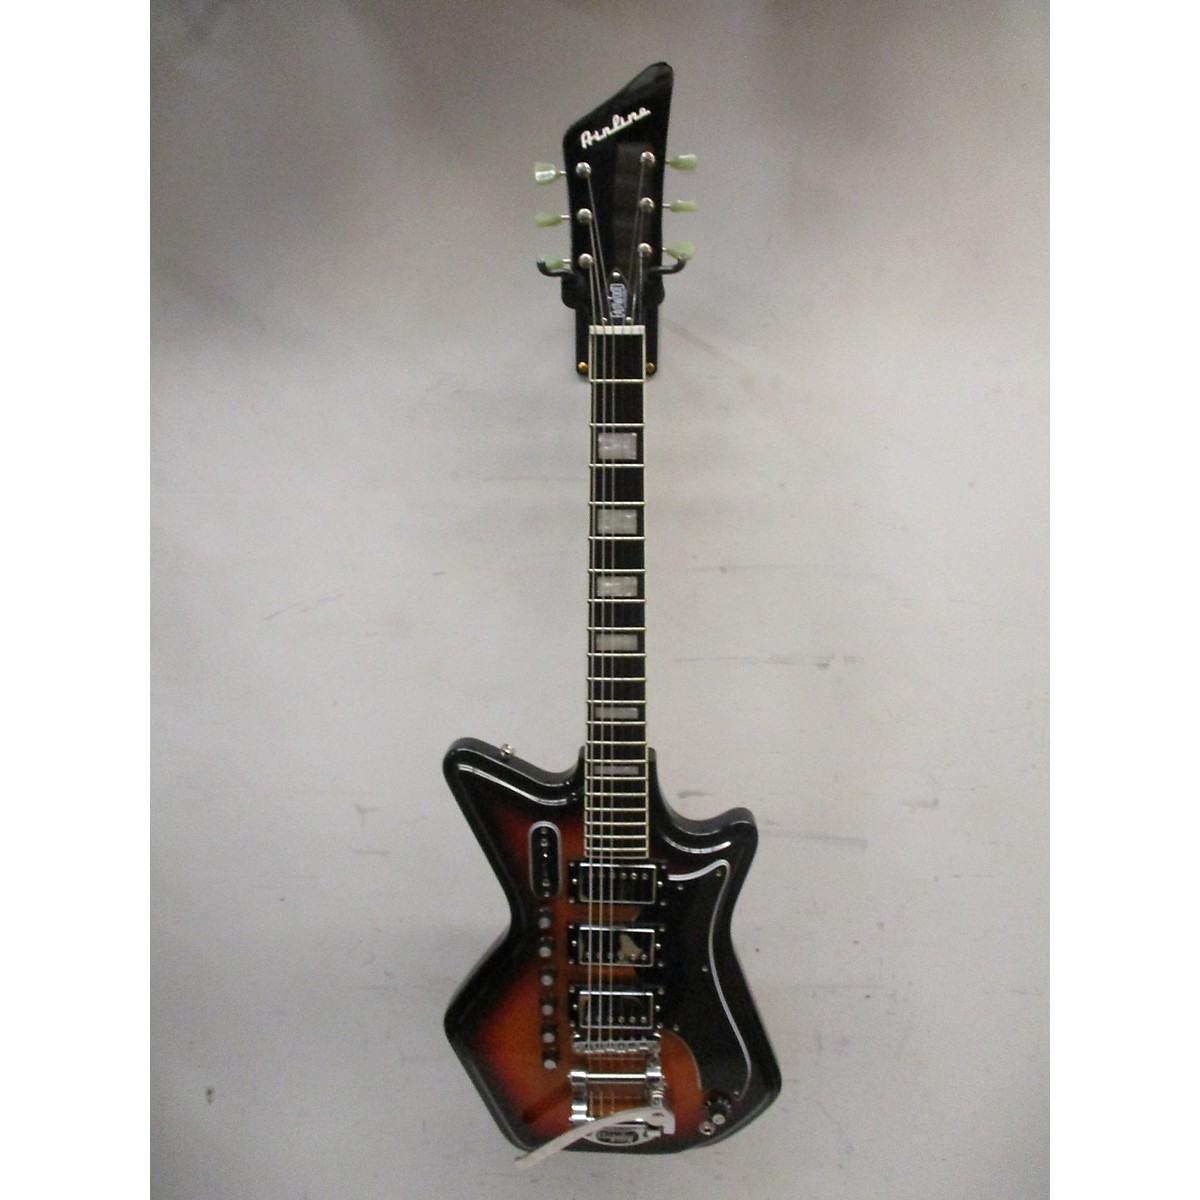 Eastwood Airline 59 3P DLX Solid Body Electric Guitar